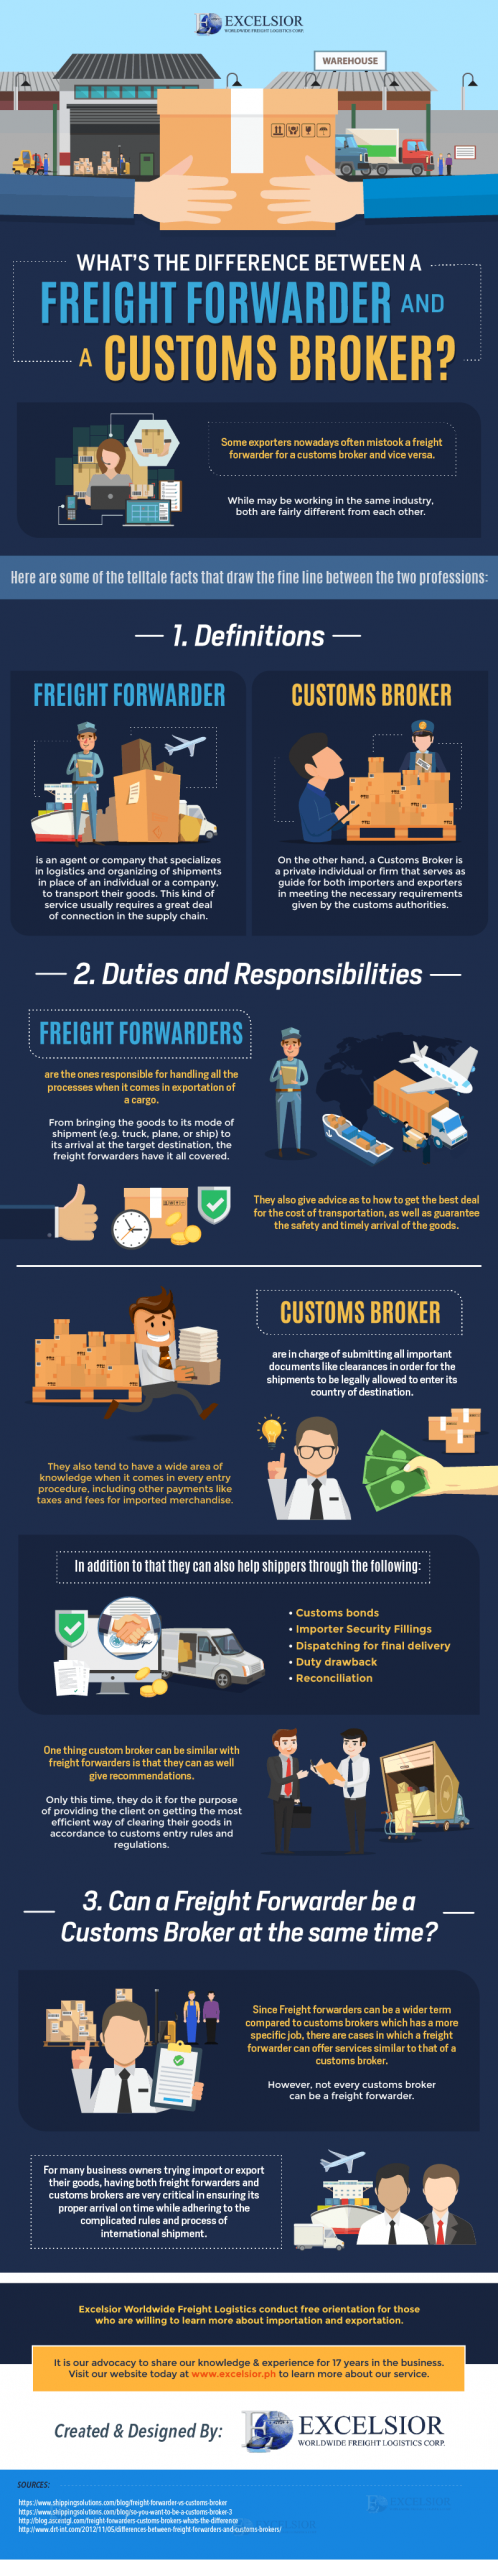 Whats the Difference Between a Freight Forwarder and a Customs Broker